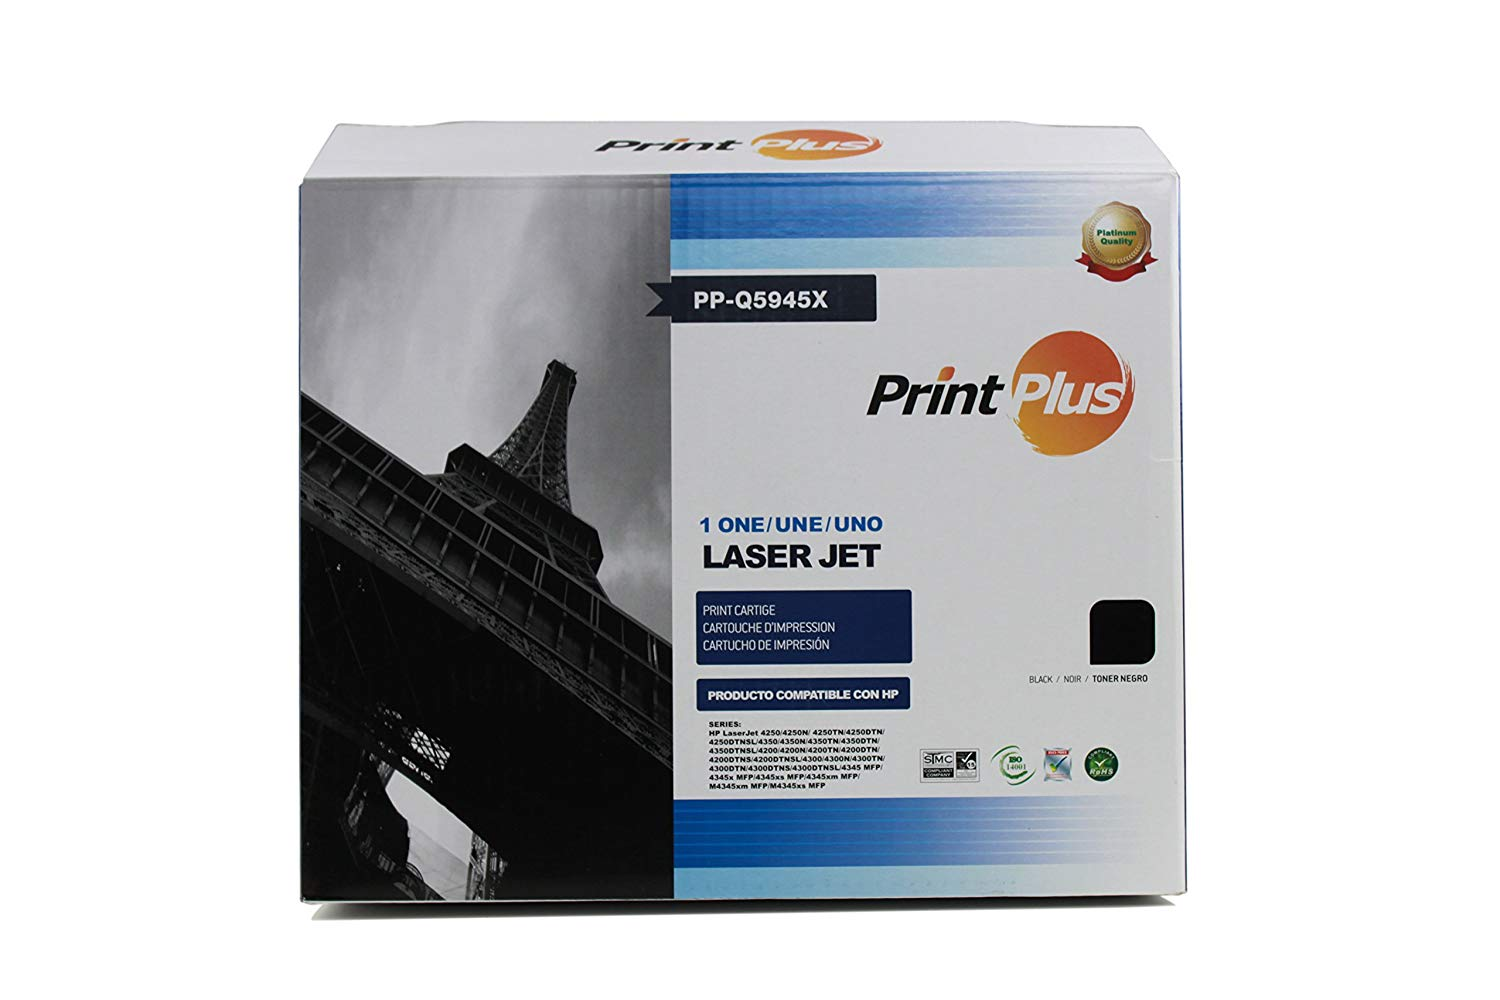 Cheap M4345x Mfp Find Deals On Line At Alibabacom Block Diagram Hpljmfpm9040m9050 Get Quotations High Yield New Compatible Hp Q5945x 45x Premium Black Replacement Toner Cartridge For Laserjet